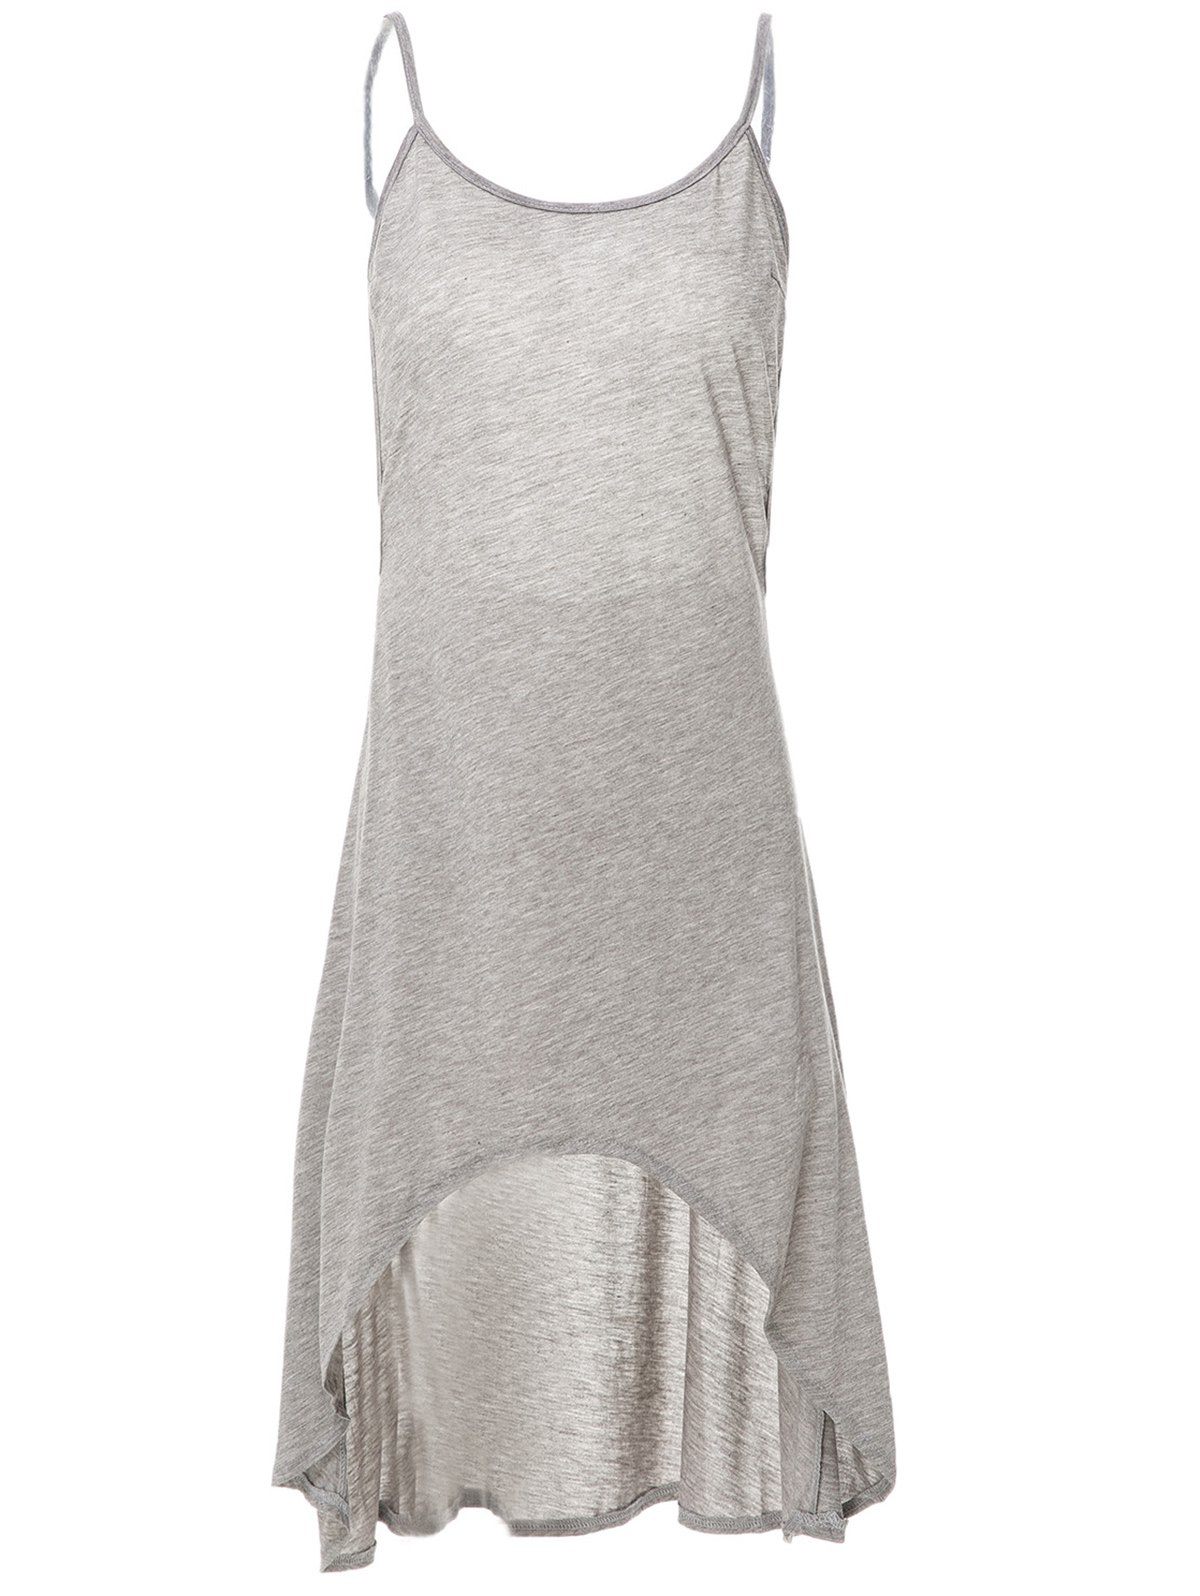 Gris Spaghetti Strap Backless Haut Robe Bas - Gris S